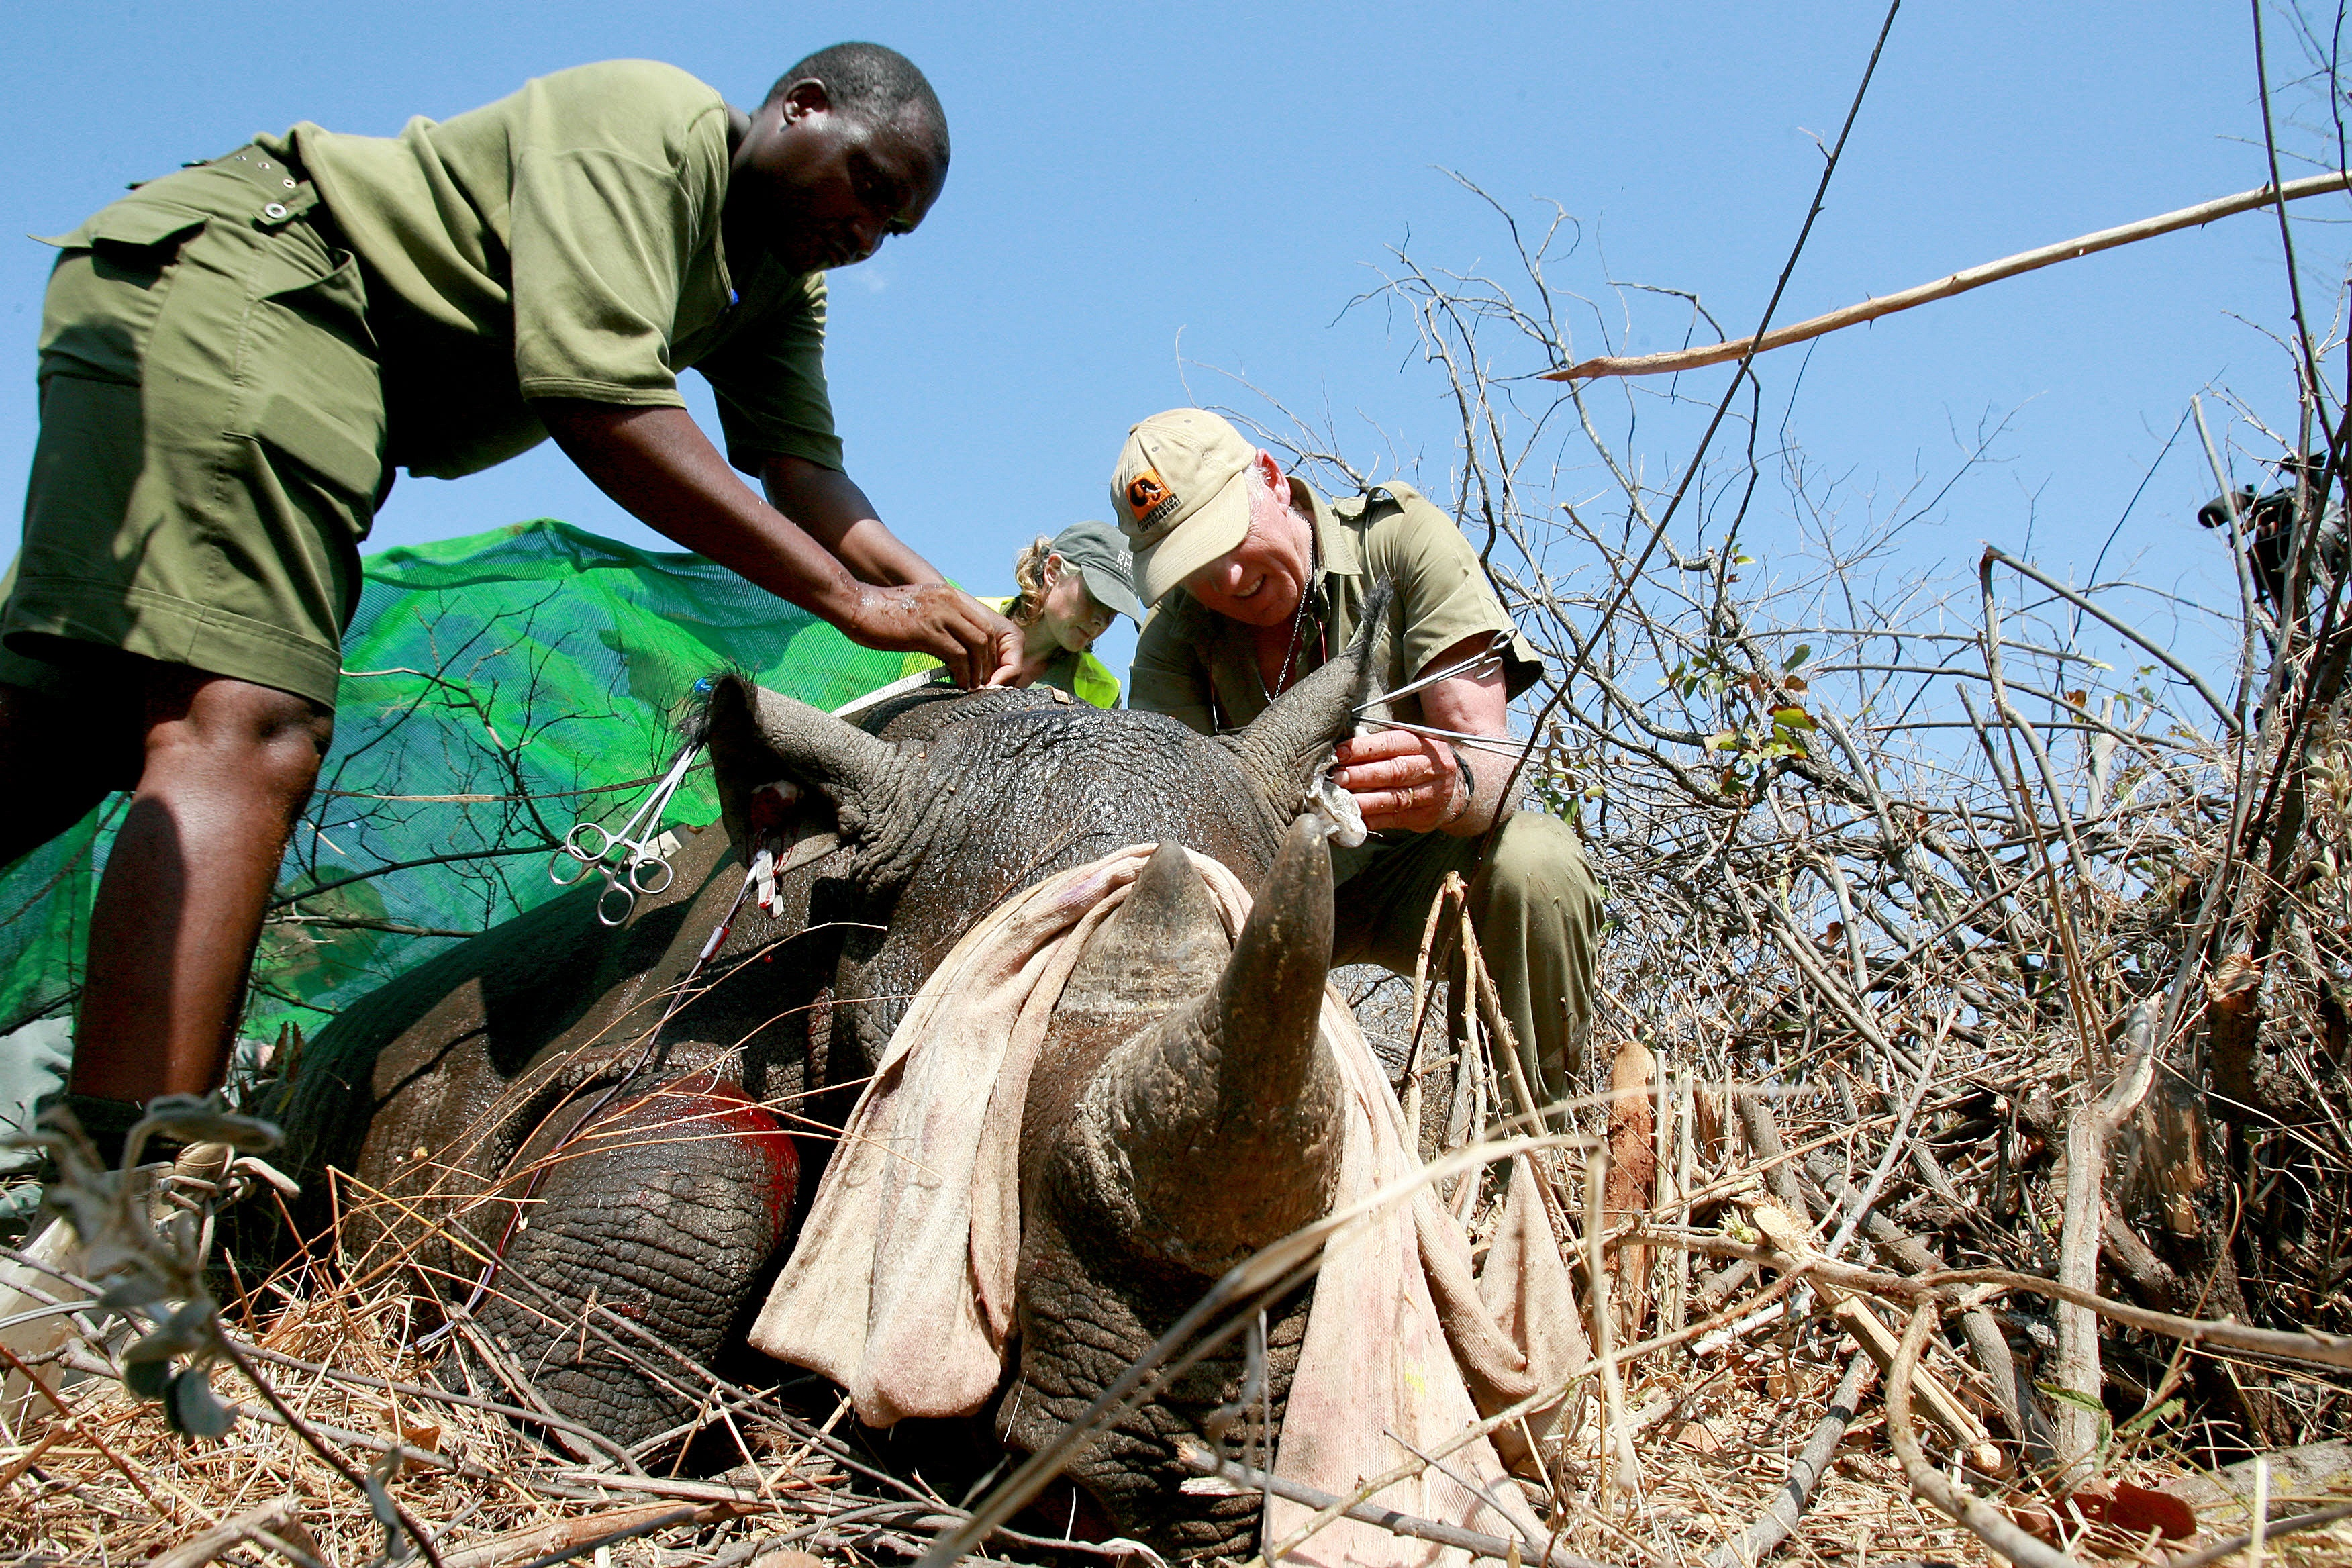 In this file photo from October 8, 2010, workers from the World Wildlife Fund (WWF) go through a process of de-horning  a rhino in Chipinge National Park in Zimbabwe.